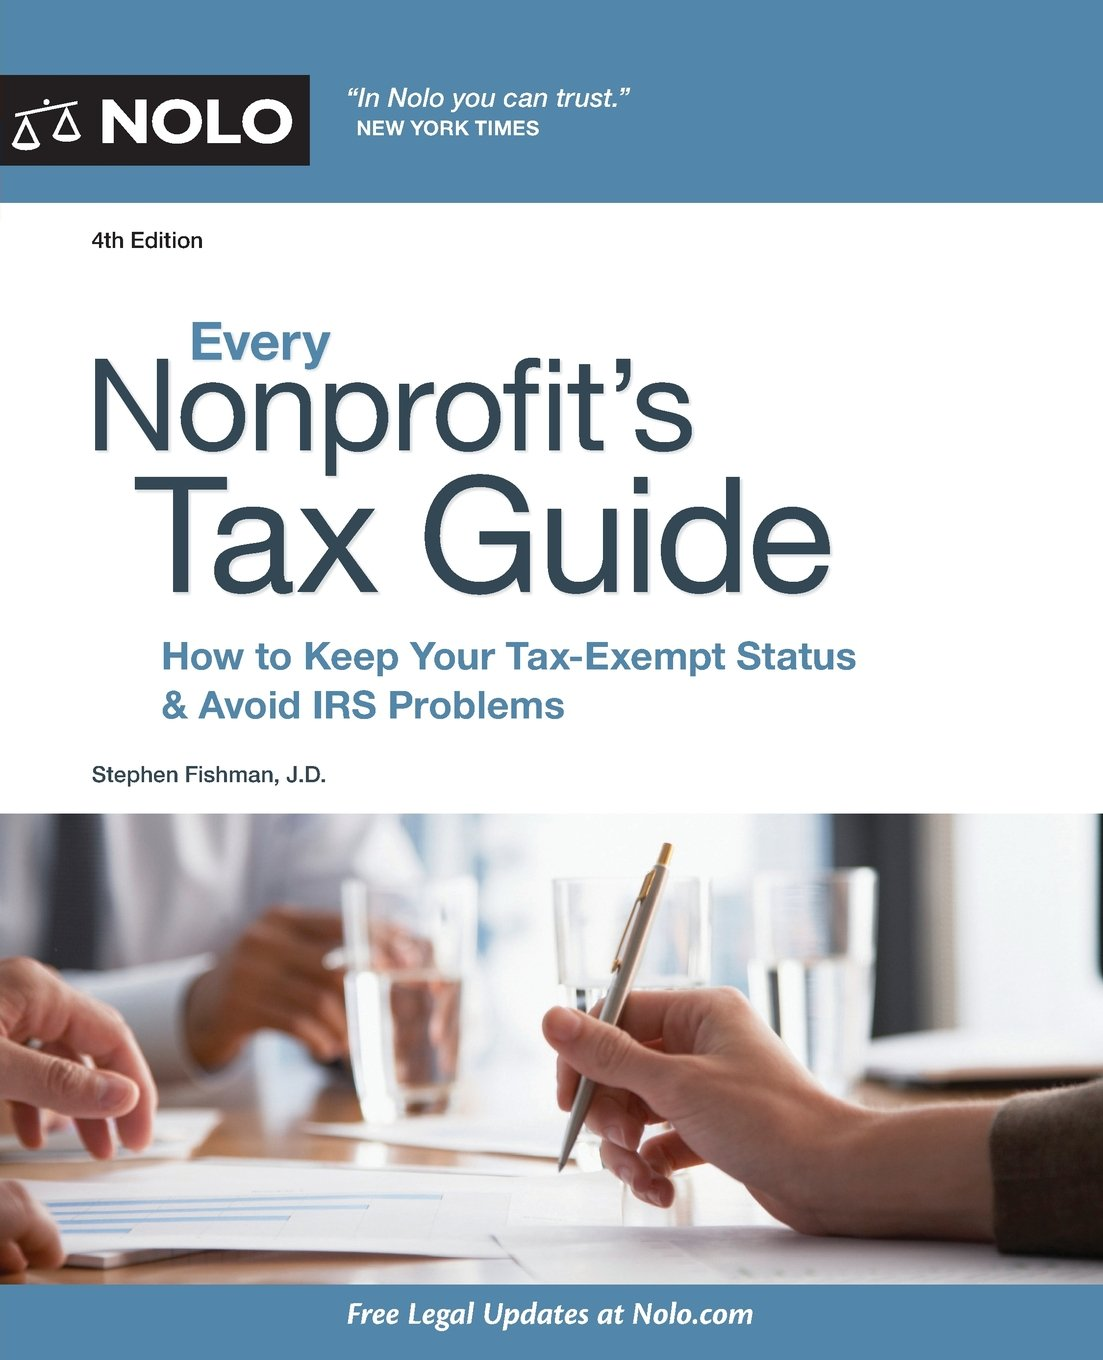 Every Nonprofit's Tax Guide: How to Keep Your Tax-Exempt Status & Avoid IRS  Problems: Stephen Fishman JD: 9781413321982: Amazon.com: Books